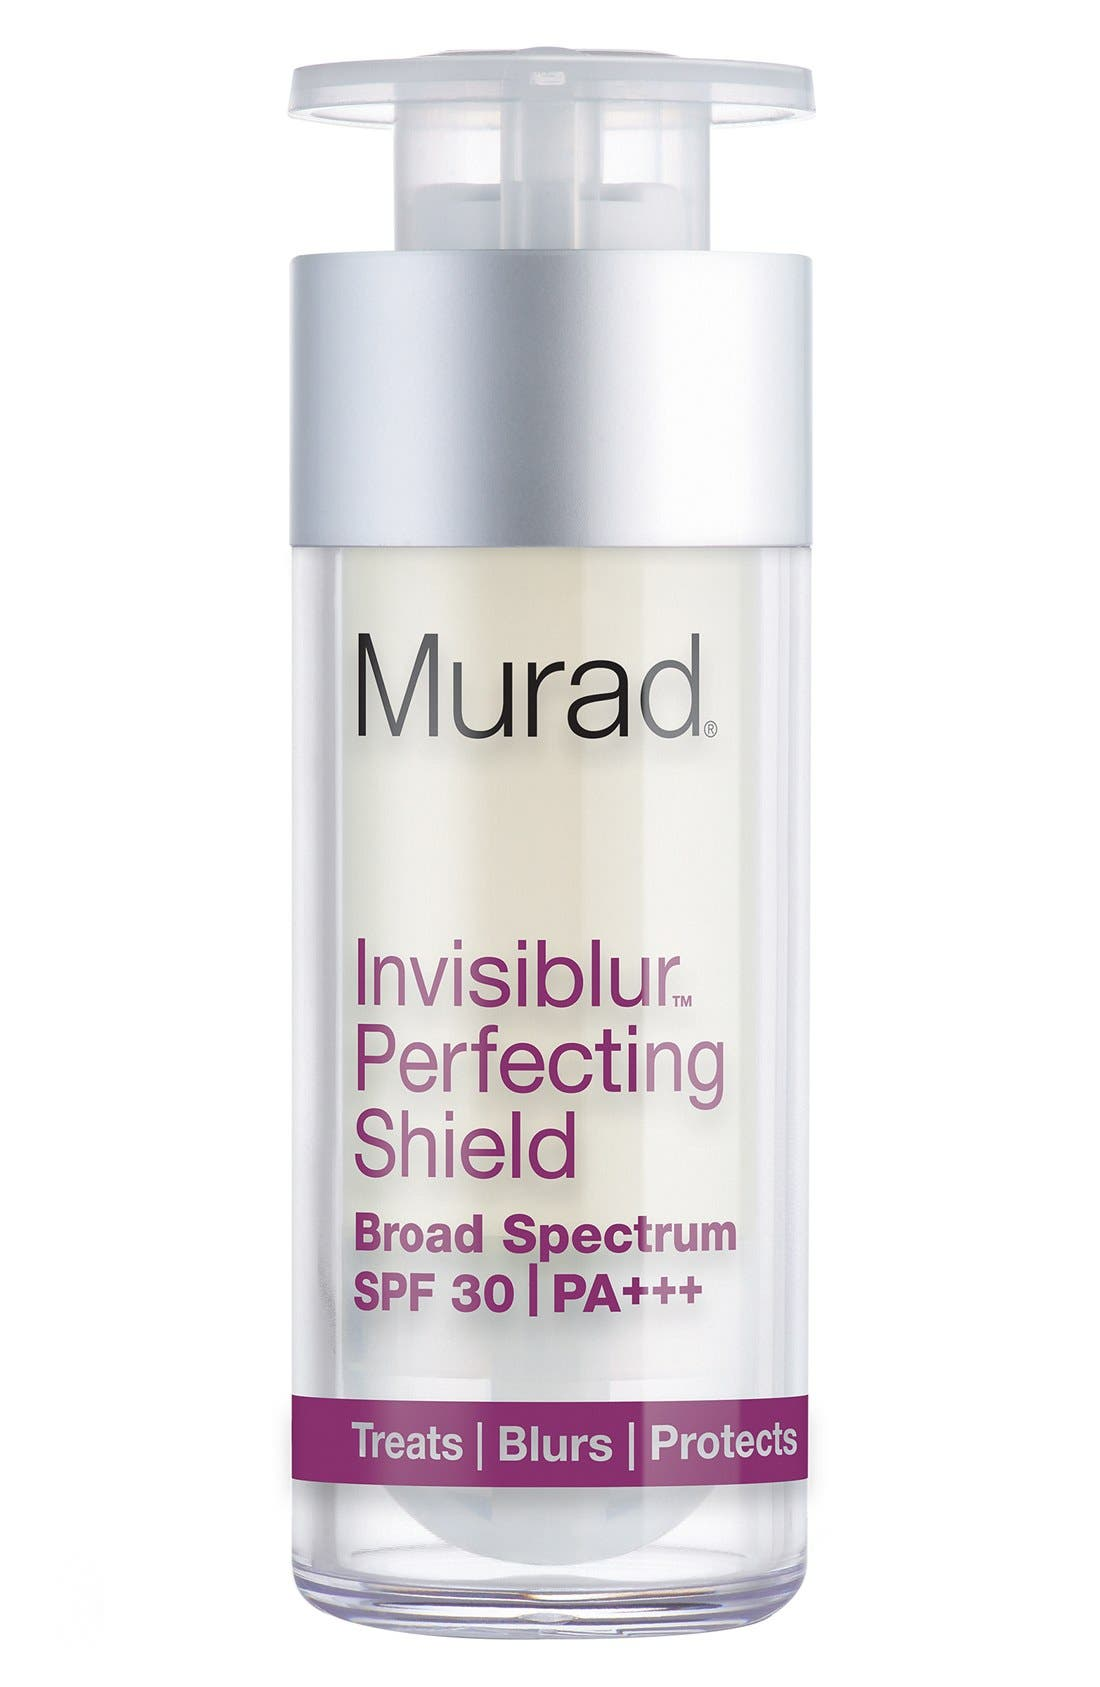 Murad® 'Invisiblur™' Perfecting Shield Broad Spectrum SPF 30 PA+++